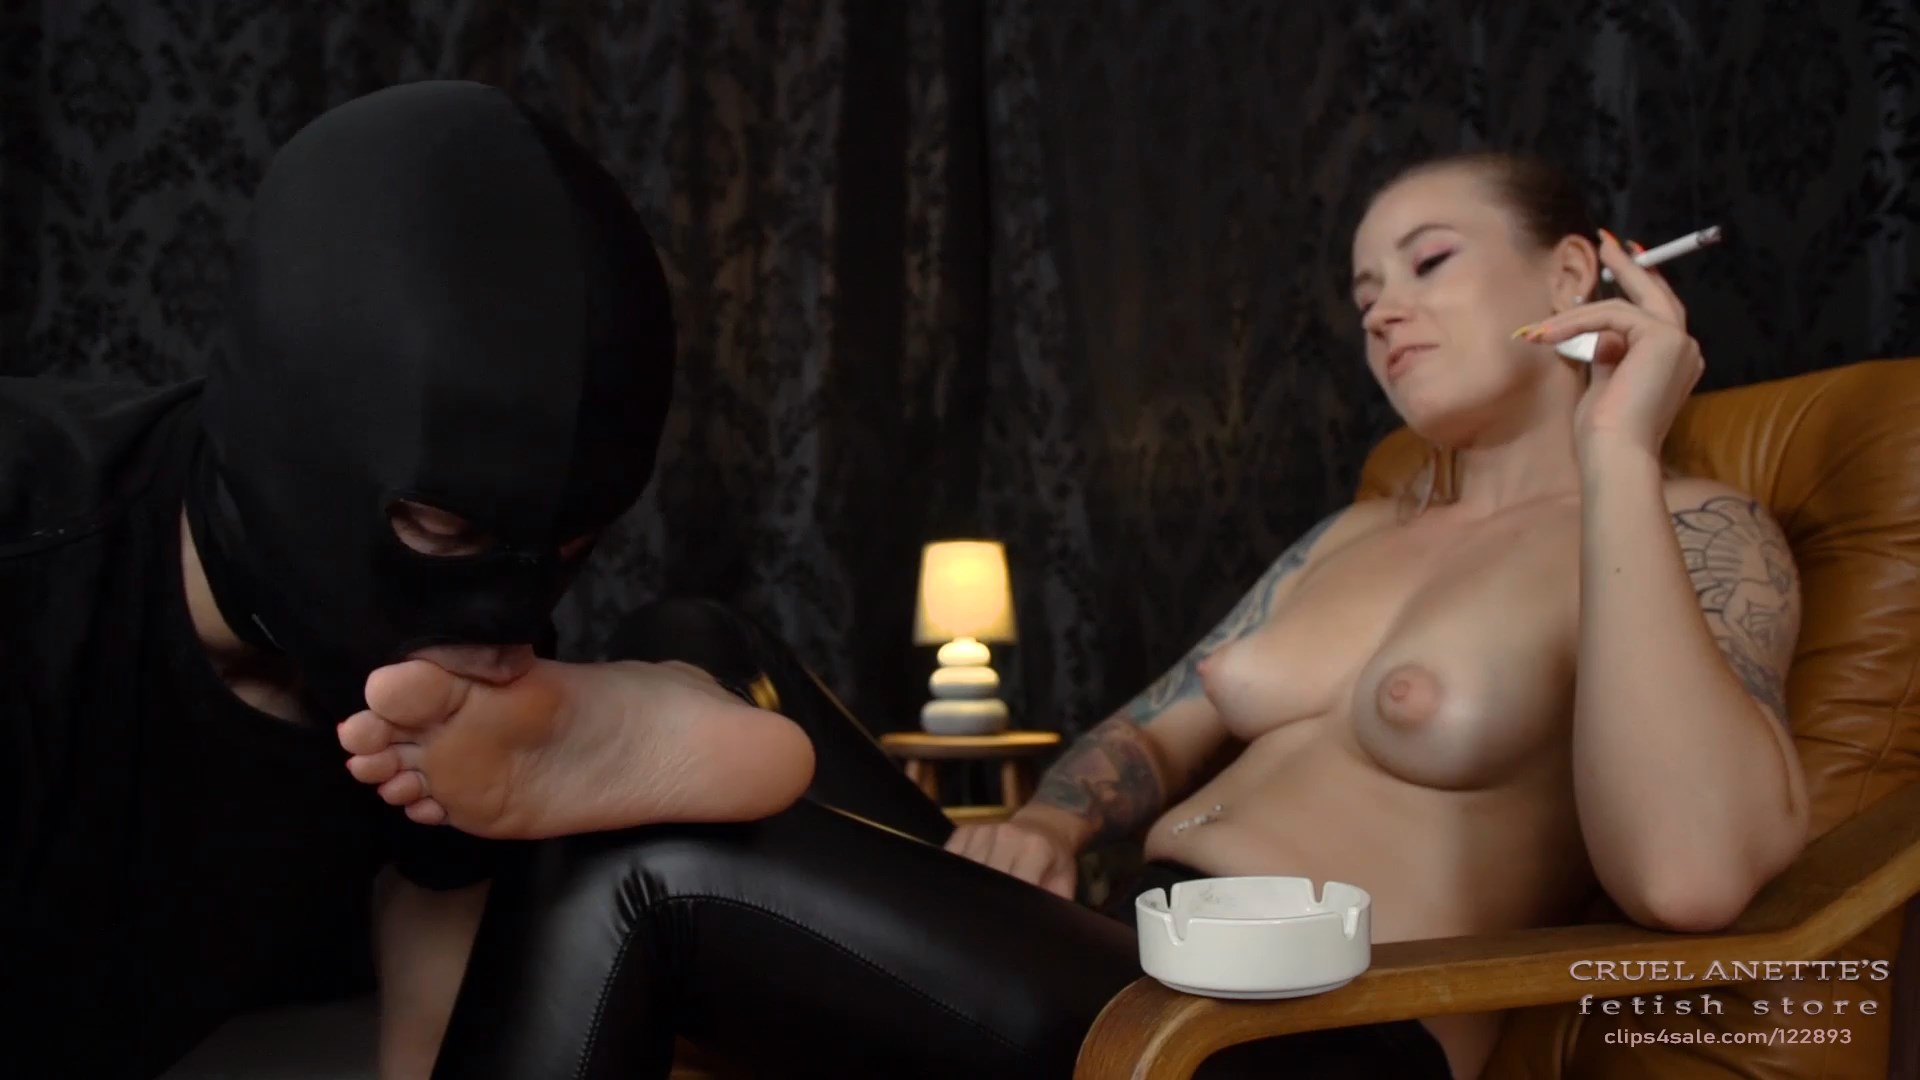 Satisfy her - CRUEL ANETTES FETISH STORE - FULL HD/1080p/MP4